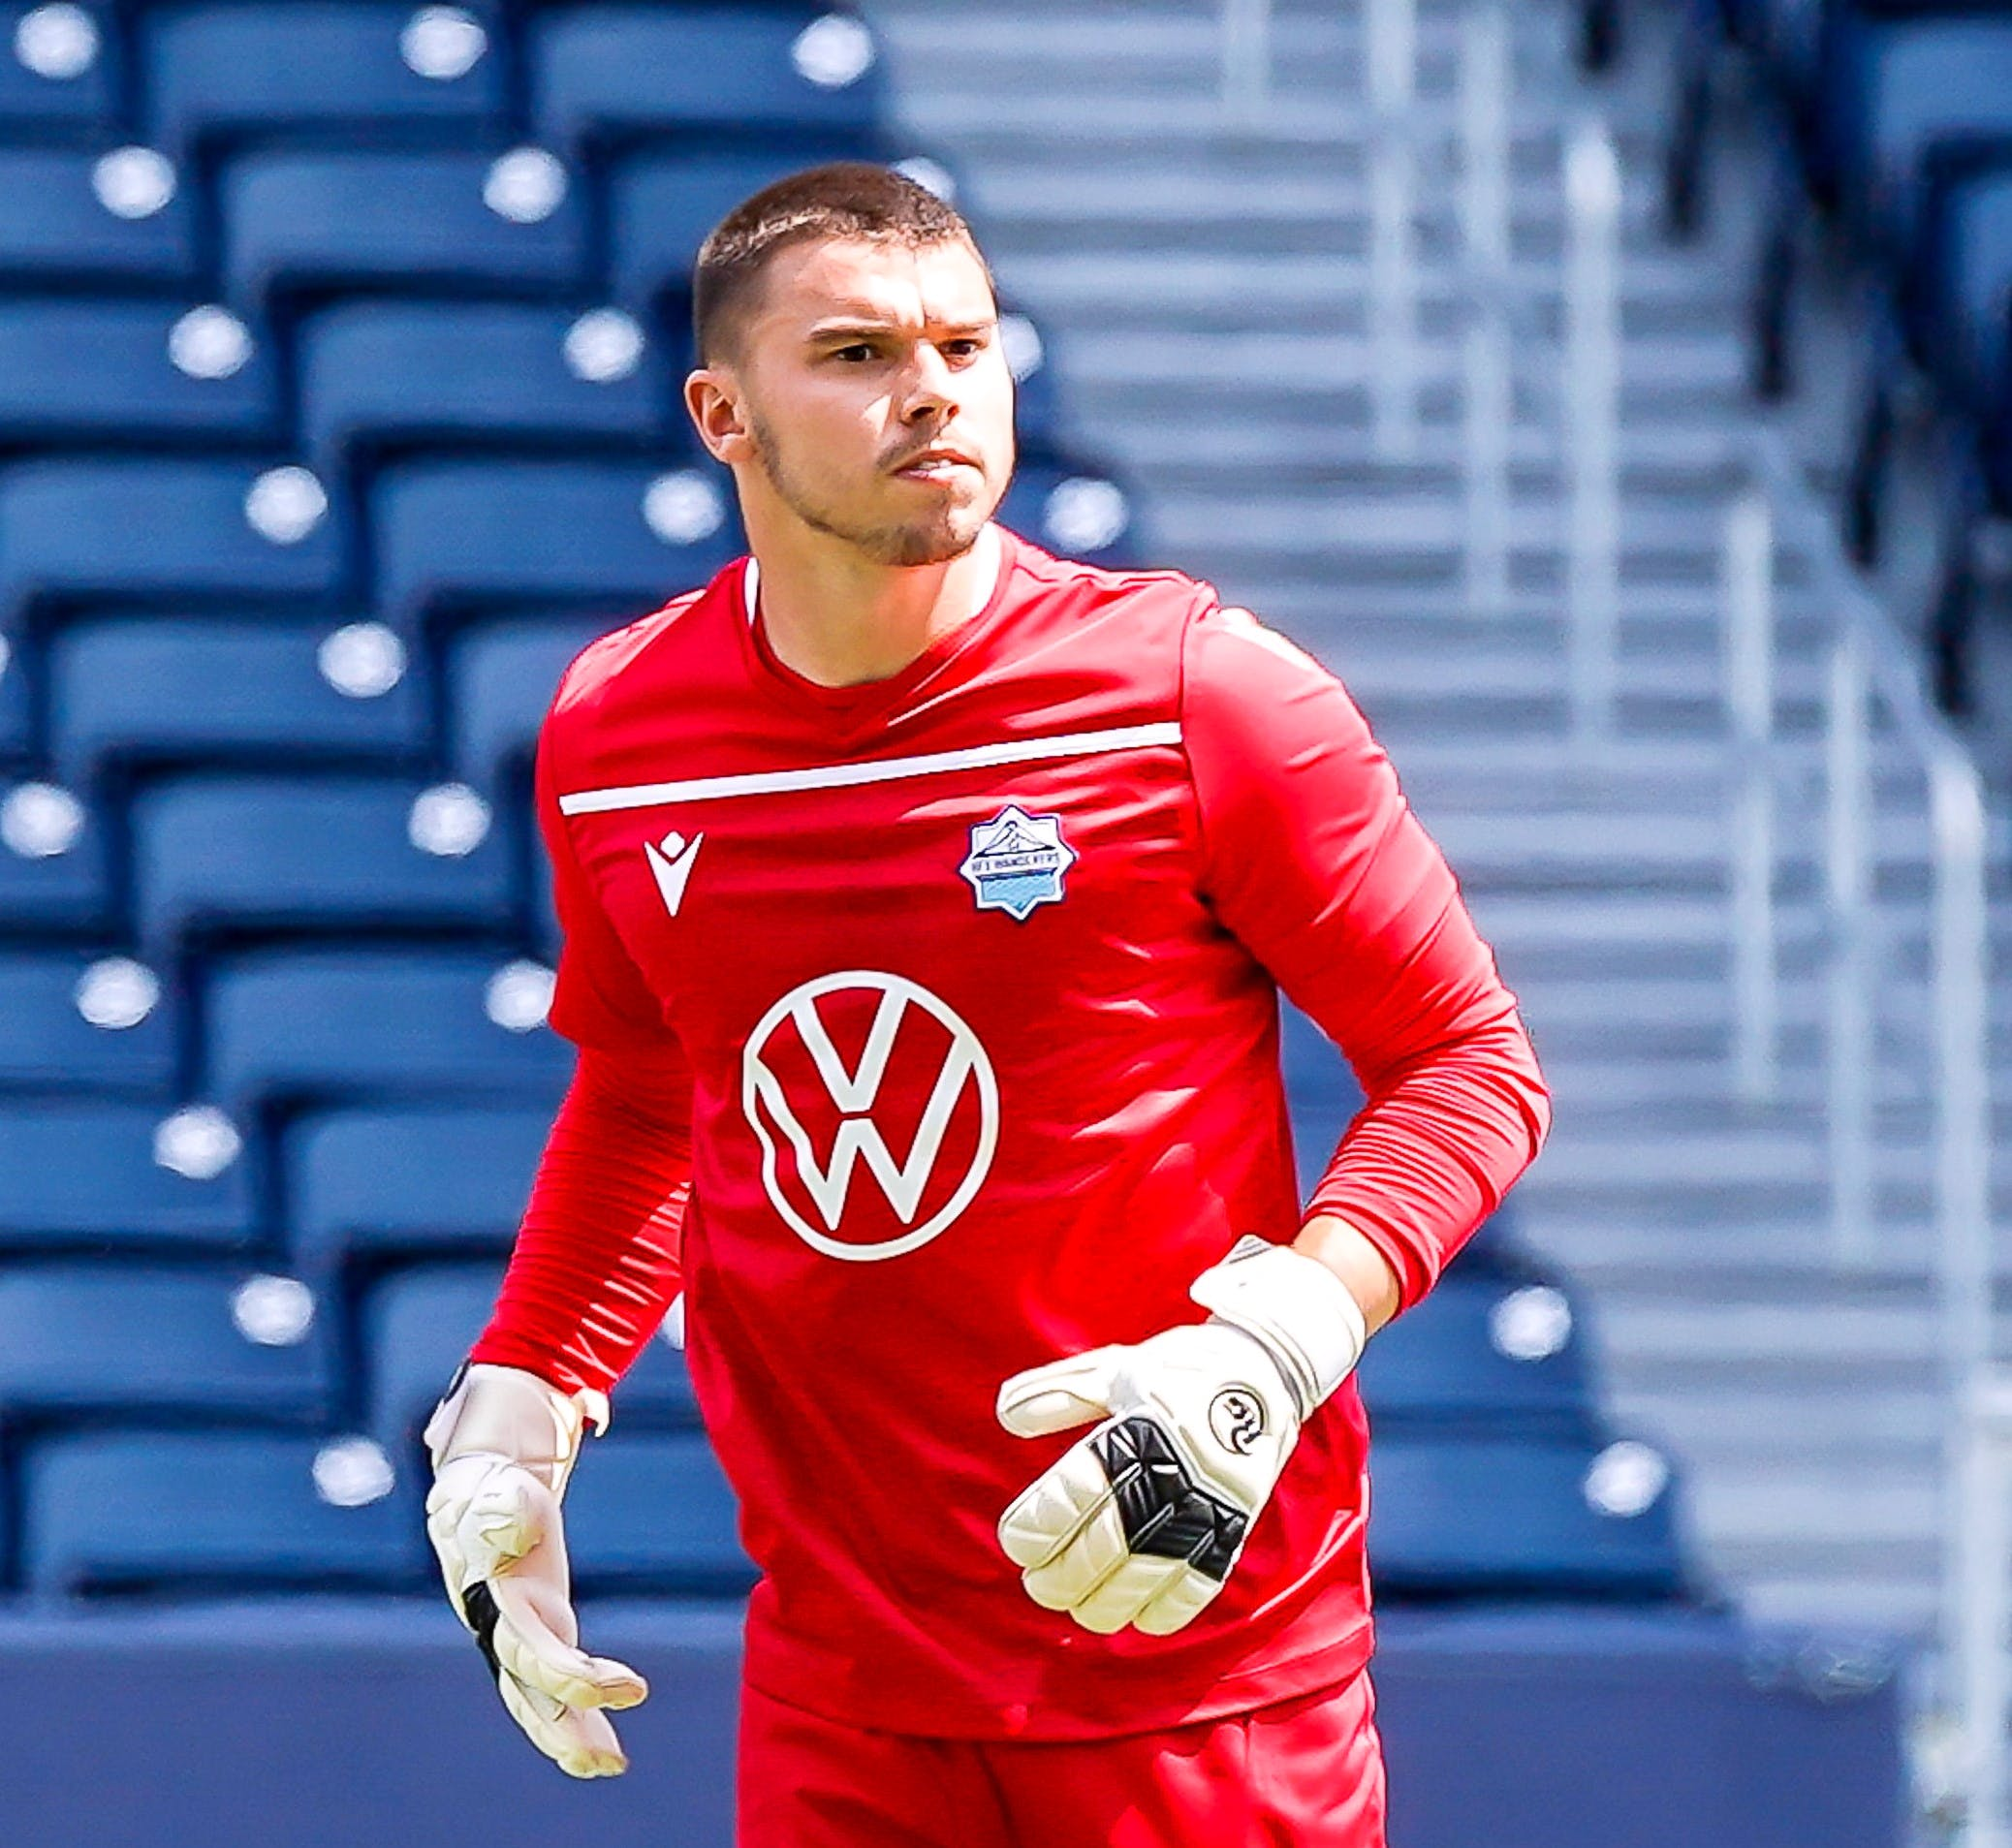 HFX Wanderers keeper Christian Oxner gets ready to put the ball in play during a Canadian Premier League match against FC Edmonton on July 10 in Winnipeg. - CANADIAN PREMIER LEAGUE